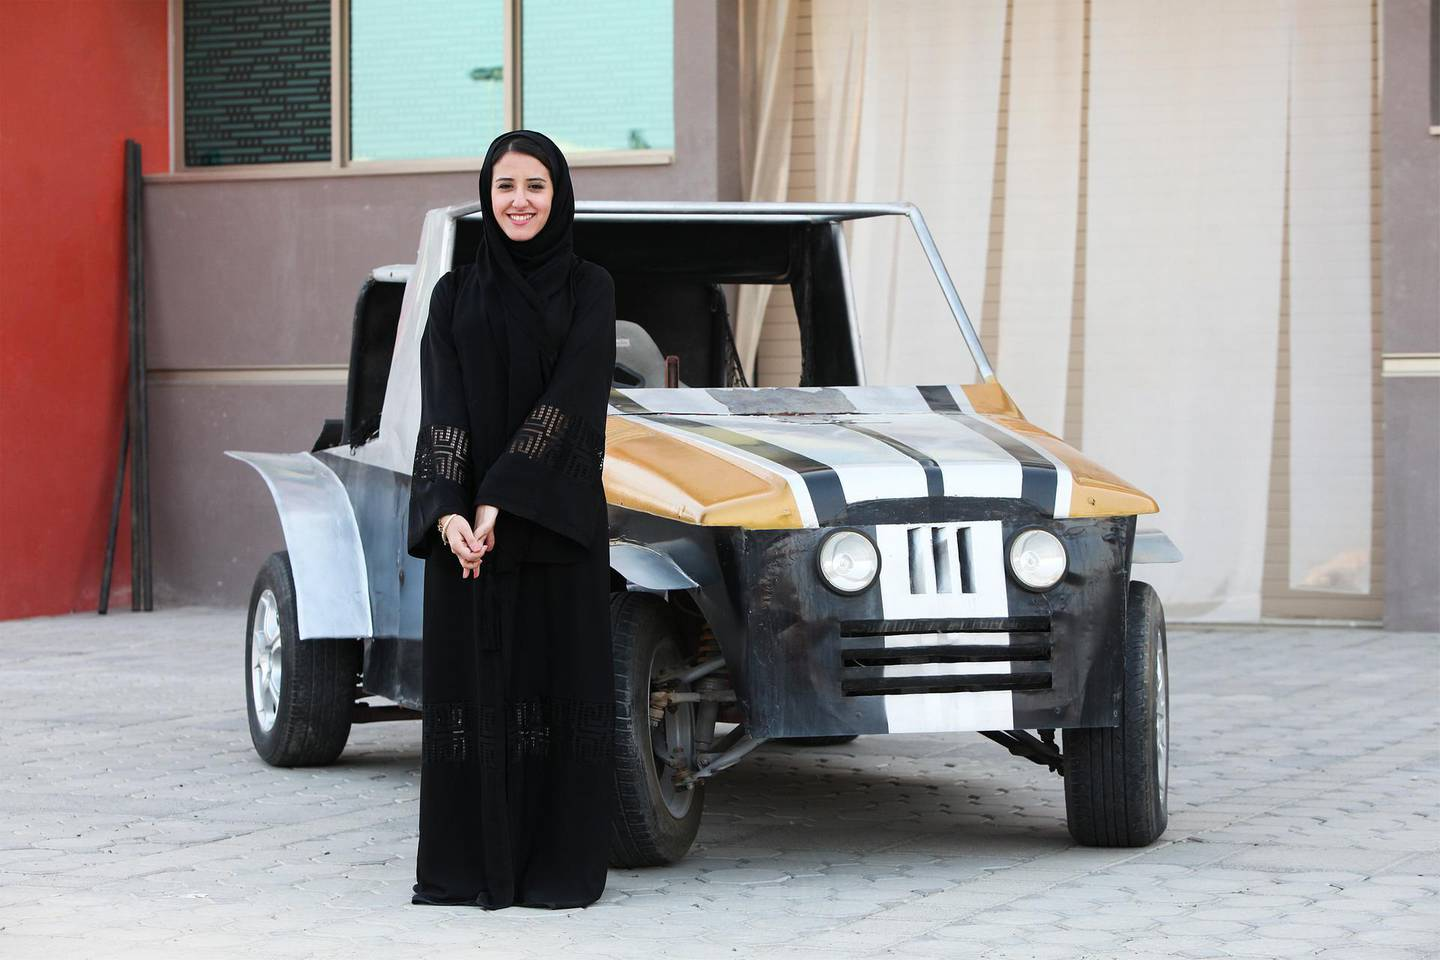 """Al Ain, UAE, October 31, 2013:Reem Al Marzouqi saw a video of an armless pilot in the U.S. airforce 5 years ago. After finding out that this pilot could fly but not drive, she decided to make a car that would only require the use of one's feet. It is seen here along with its """"innovator"""" (she did not want to use the word invention). Ms. Marzouqi, at the age of 22, is also a fashion designer and is currently majoring in Architecture at the UAE University (UAEU), where the shoot took place. Lee Hoagland/The National *** Local Caption ***  LH1031_FOOT_CAR_03.jpg"""